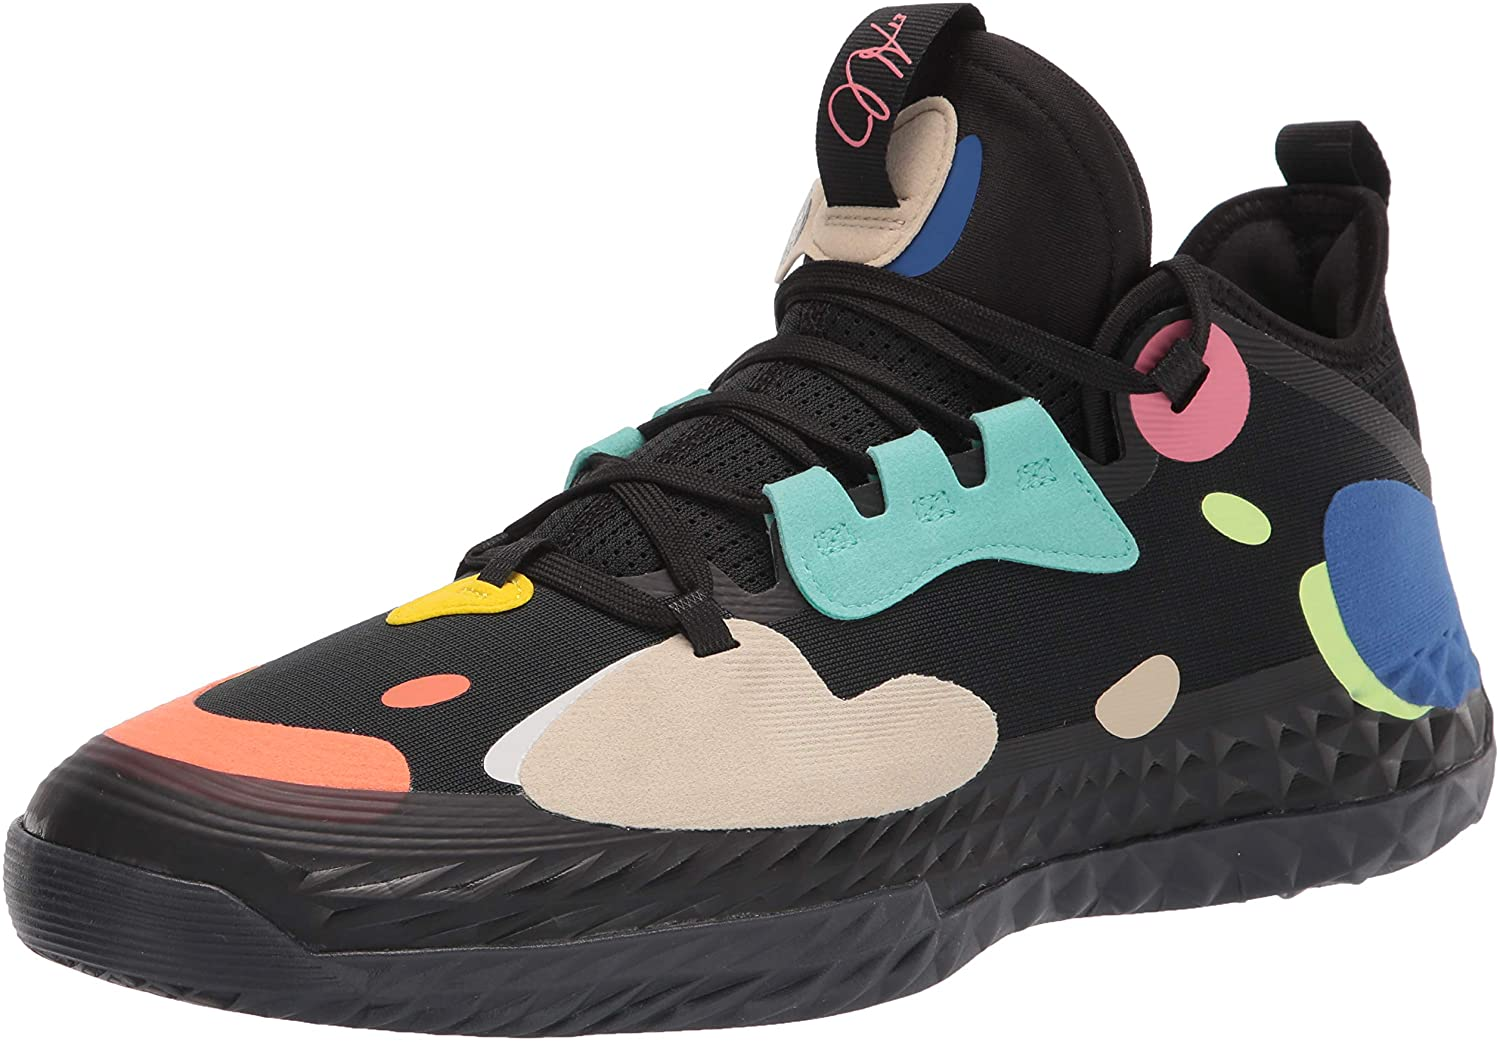 adidas Unisex-Adult Harden Volume Directly Inventory cleanup selling sale managed store Basketball 5 Shoe